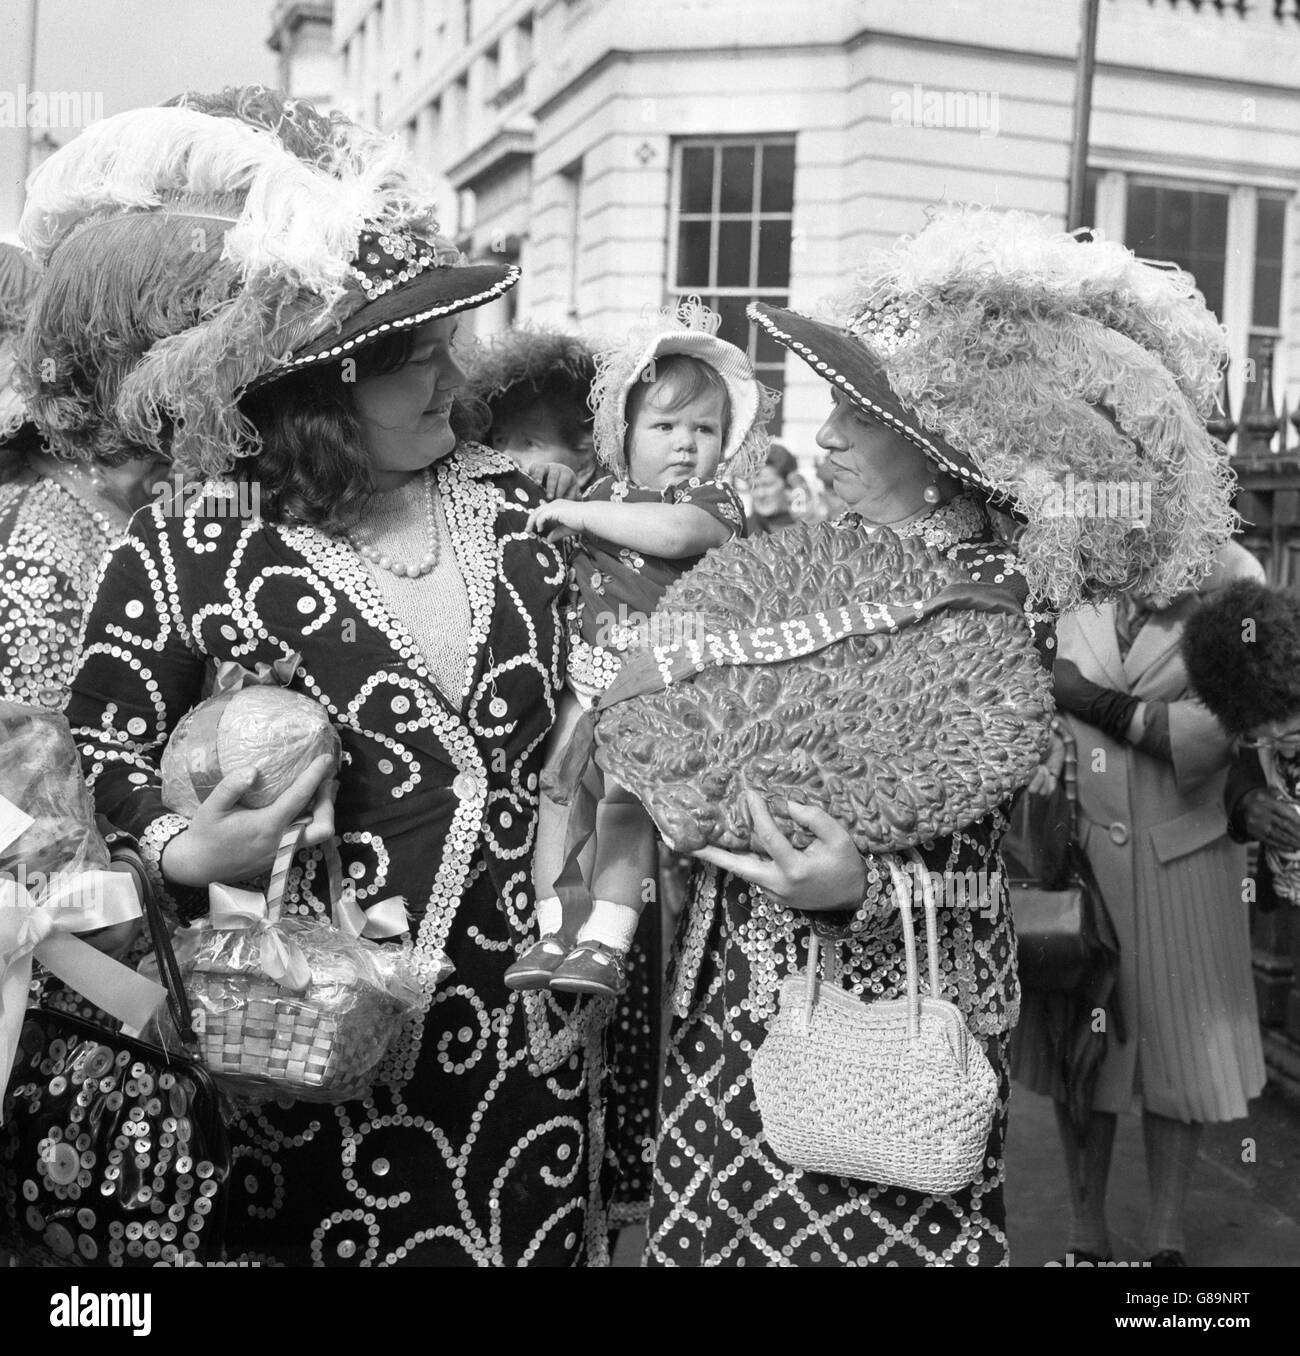 Customs and Traditions - Pearly Harvest Festival - London - Stock Image